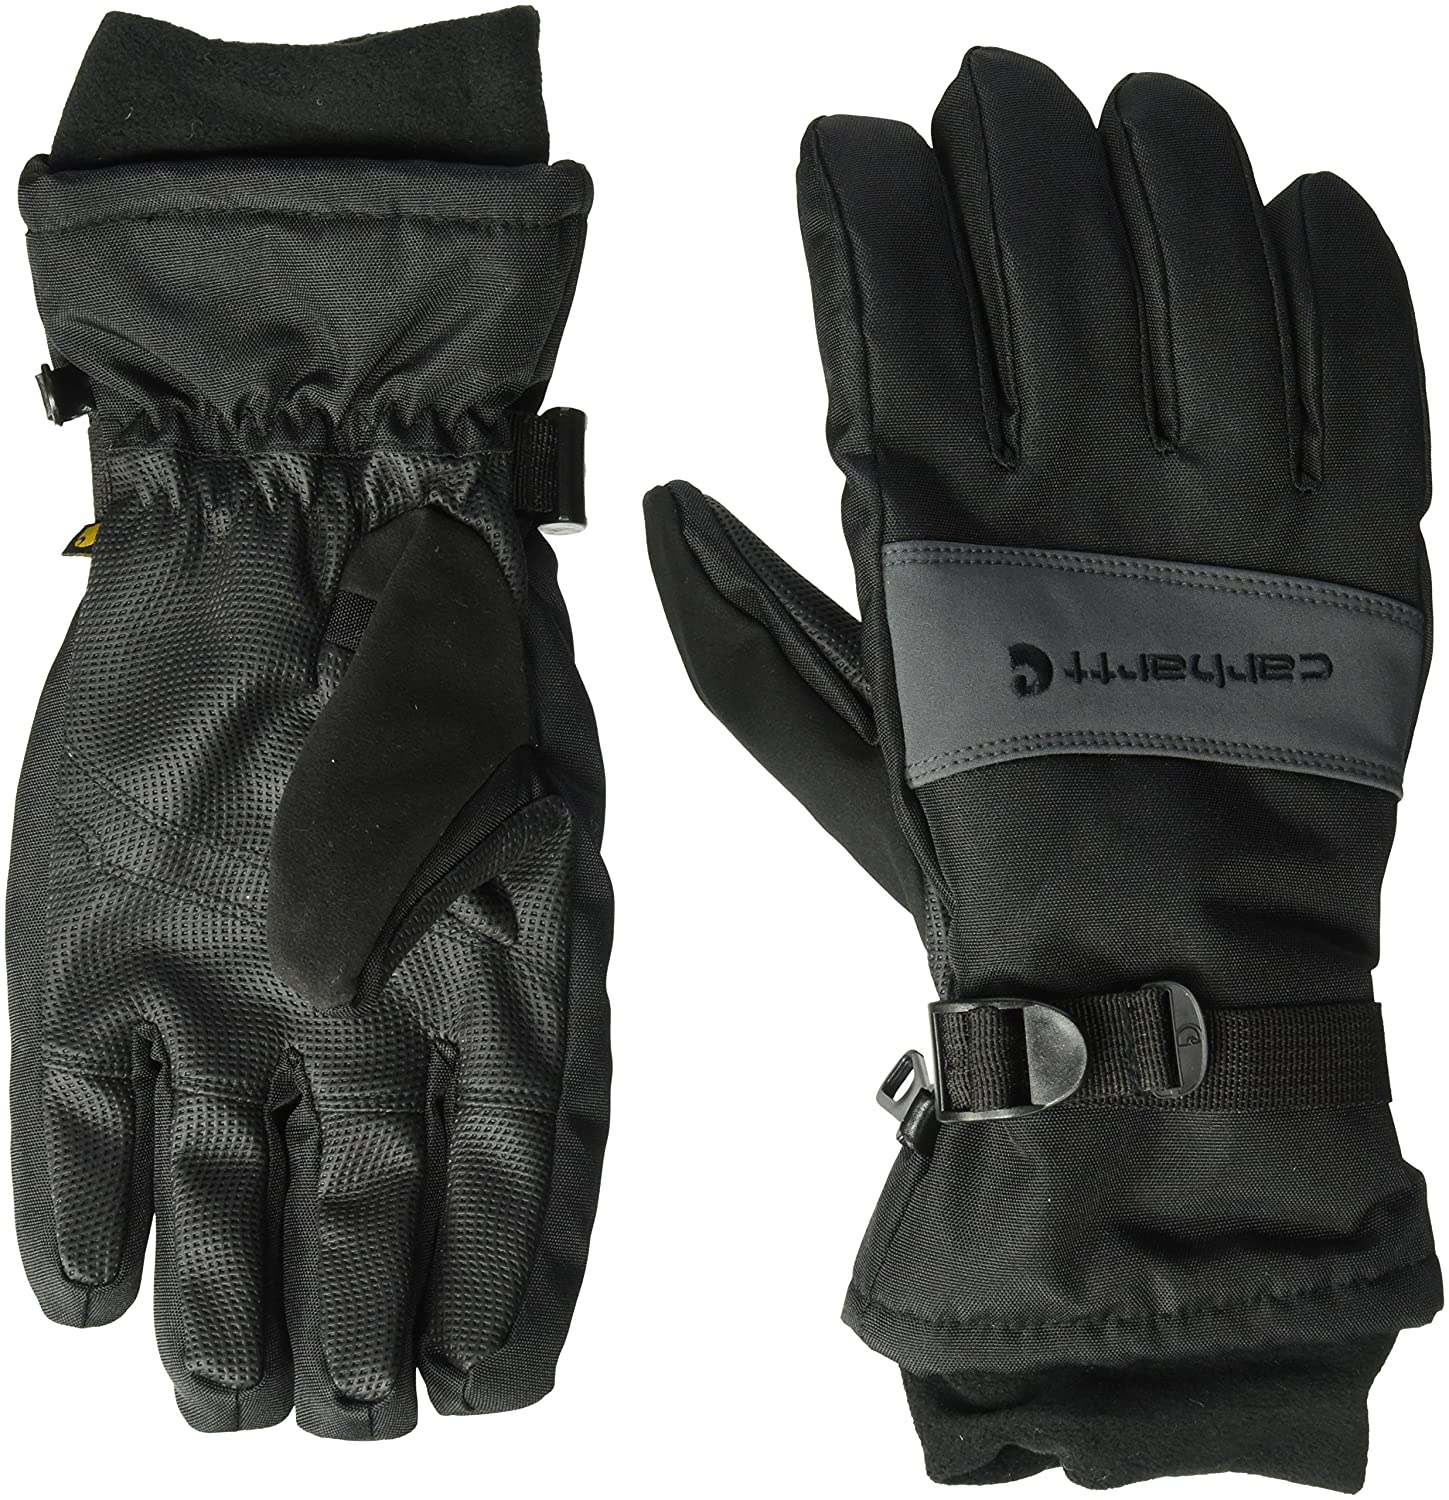 Carhartt Men's W.P. Waterproof Insulated Glove Carhartt Mens Gloves A511